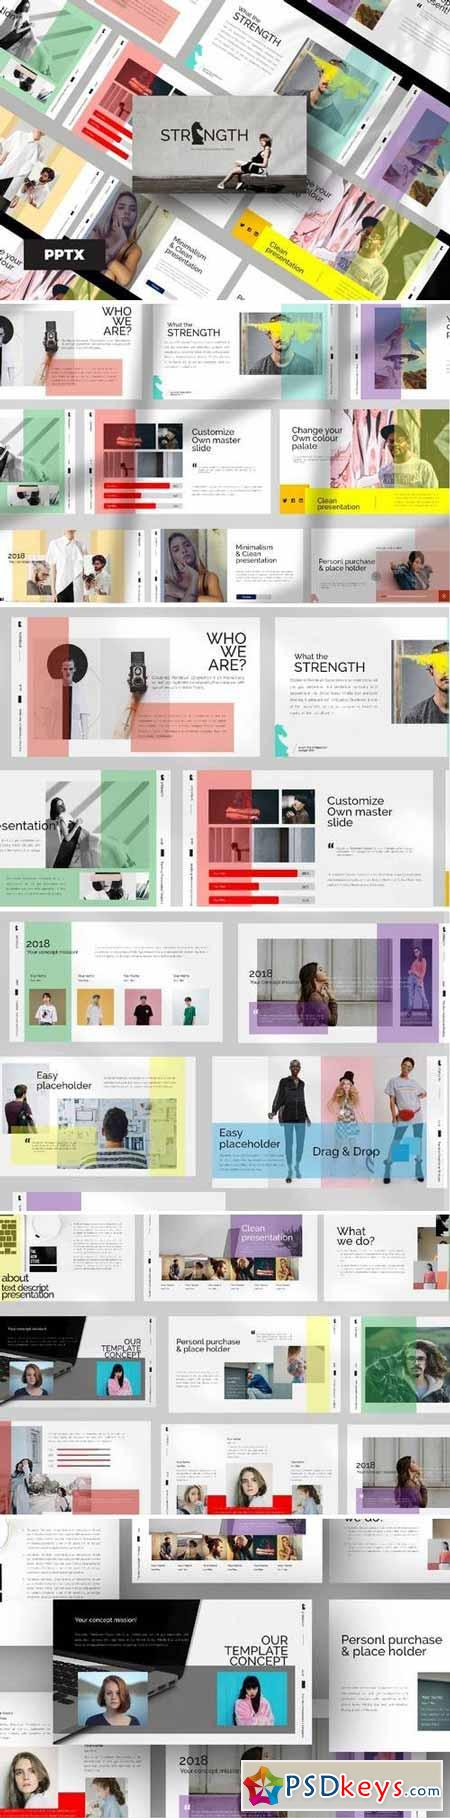 STRENGHT WHITE - Powerpoint, Keynote, Google Sliders Templates